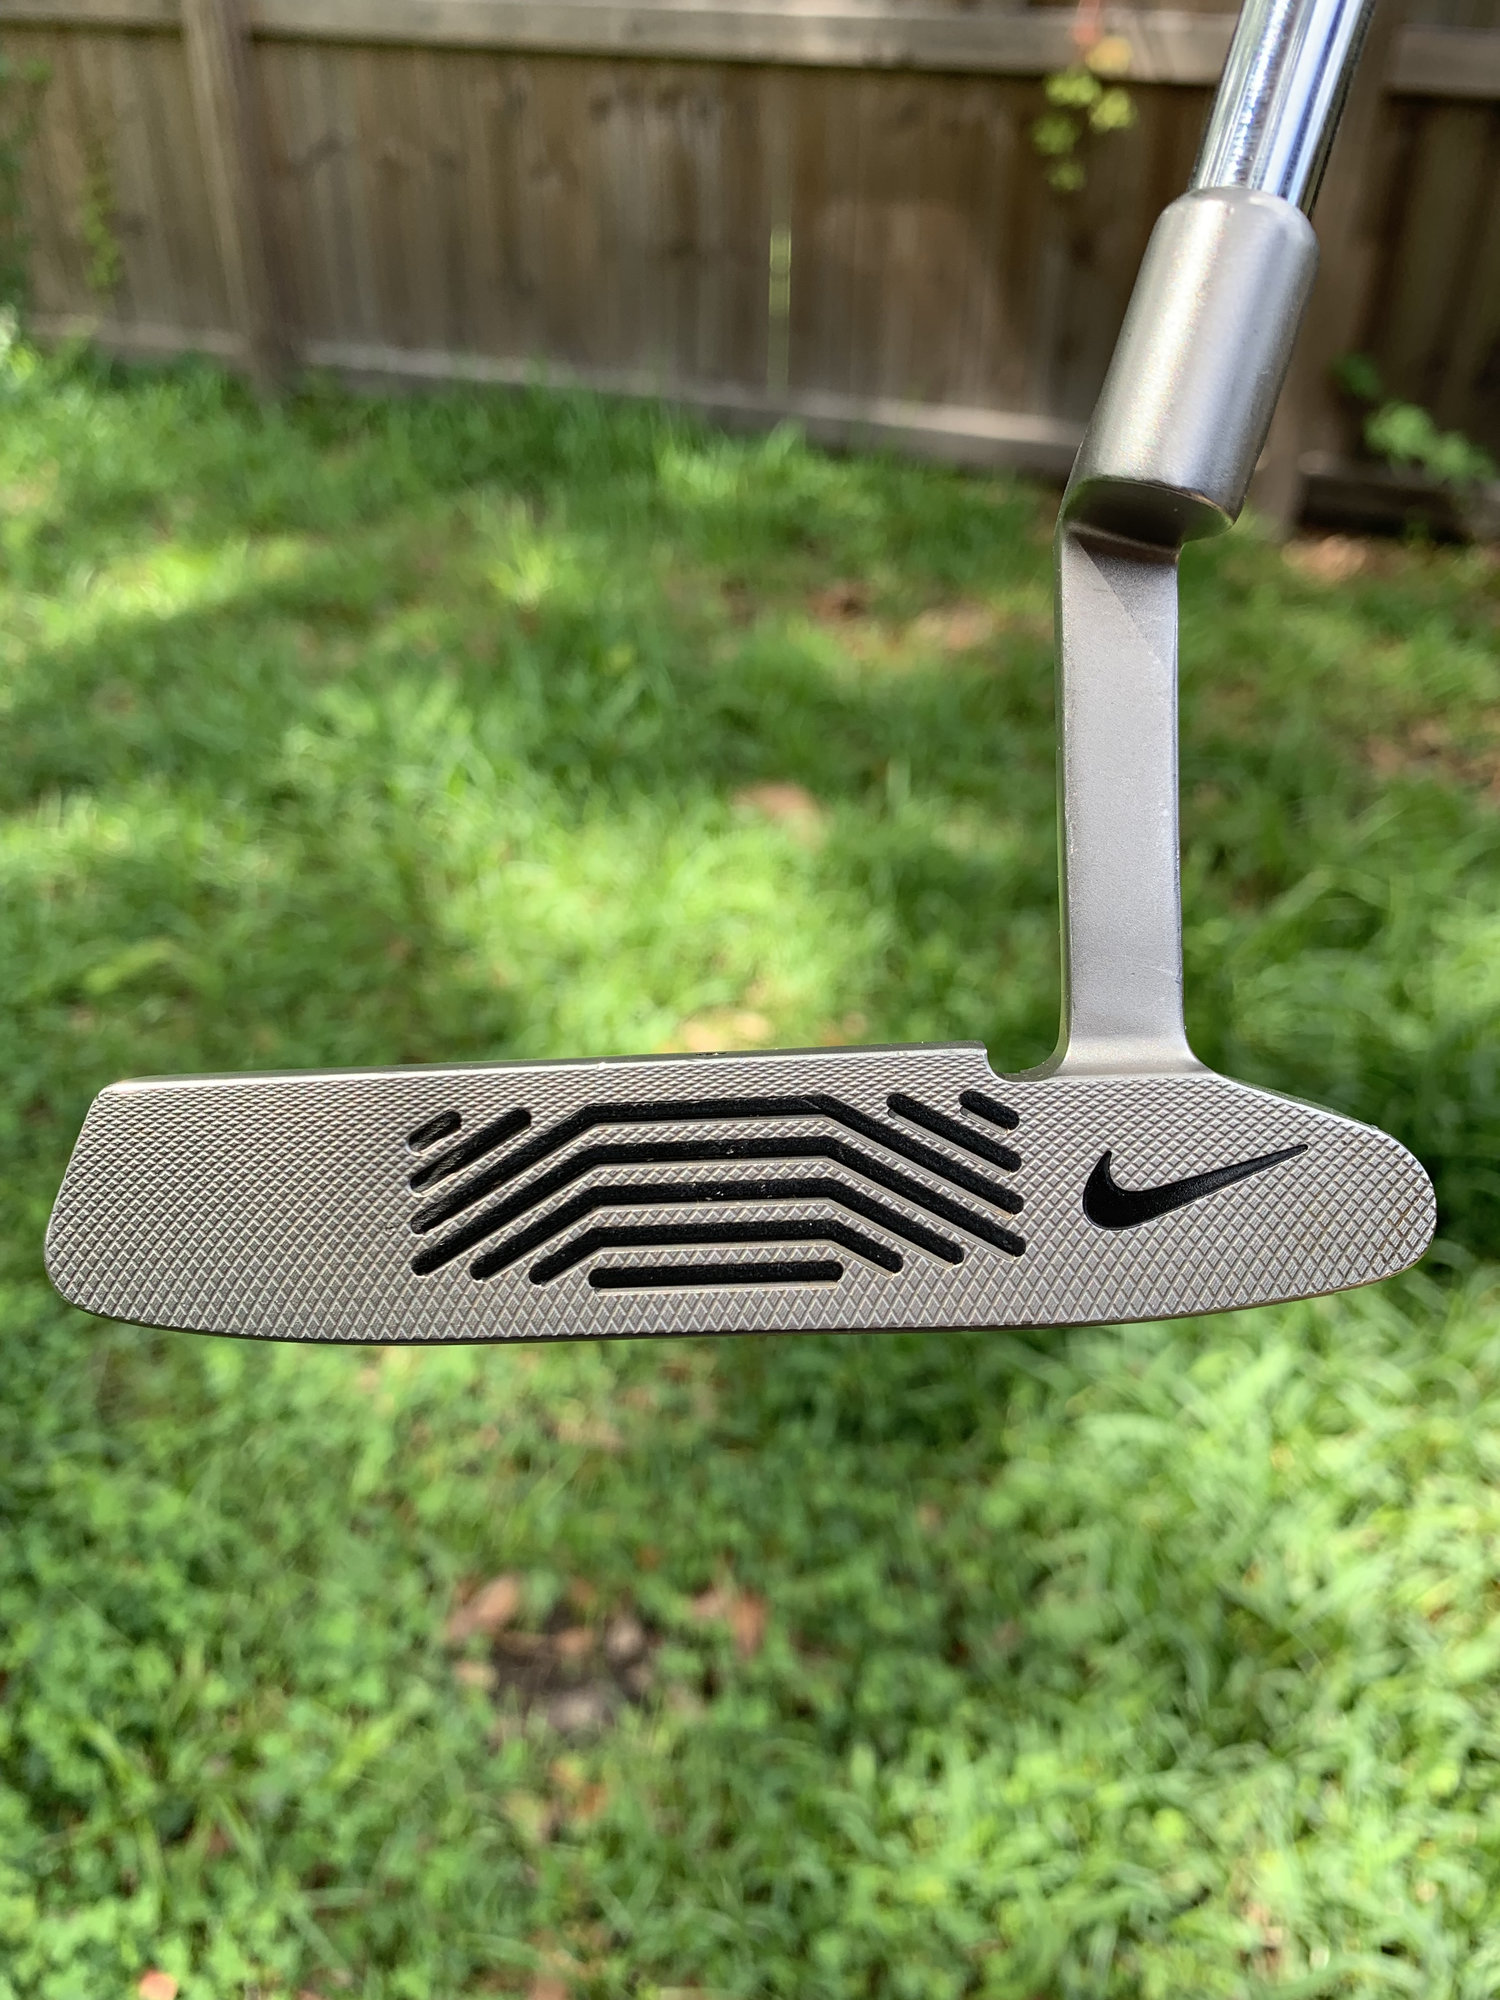 Promesa Cumplido de ultramar  Nike Method 001 Putter 33.5 inch Great Condition - For Sale Archive-For  Feedback Reference - GolfWRX